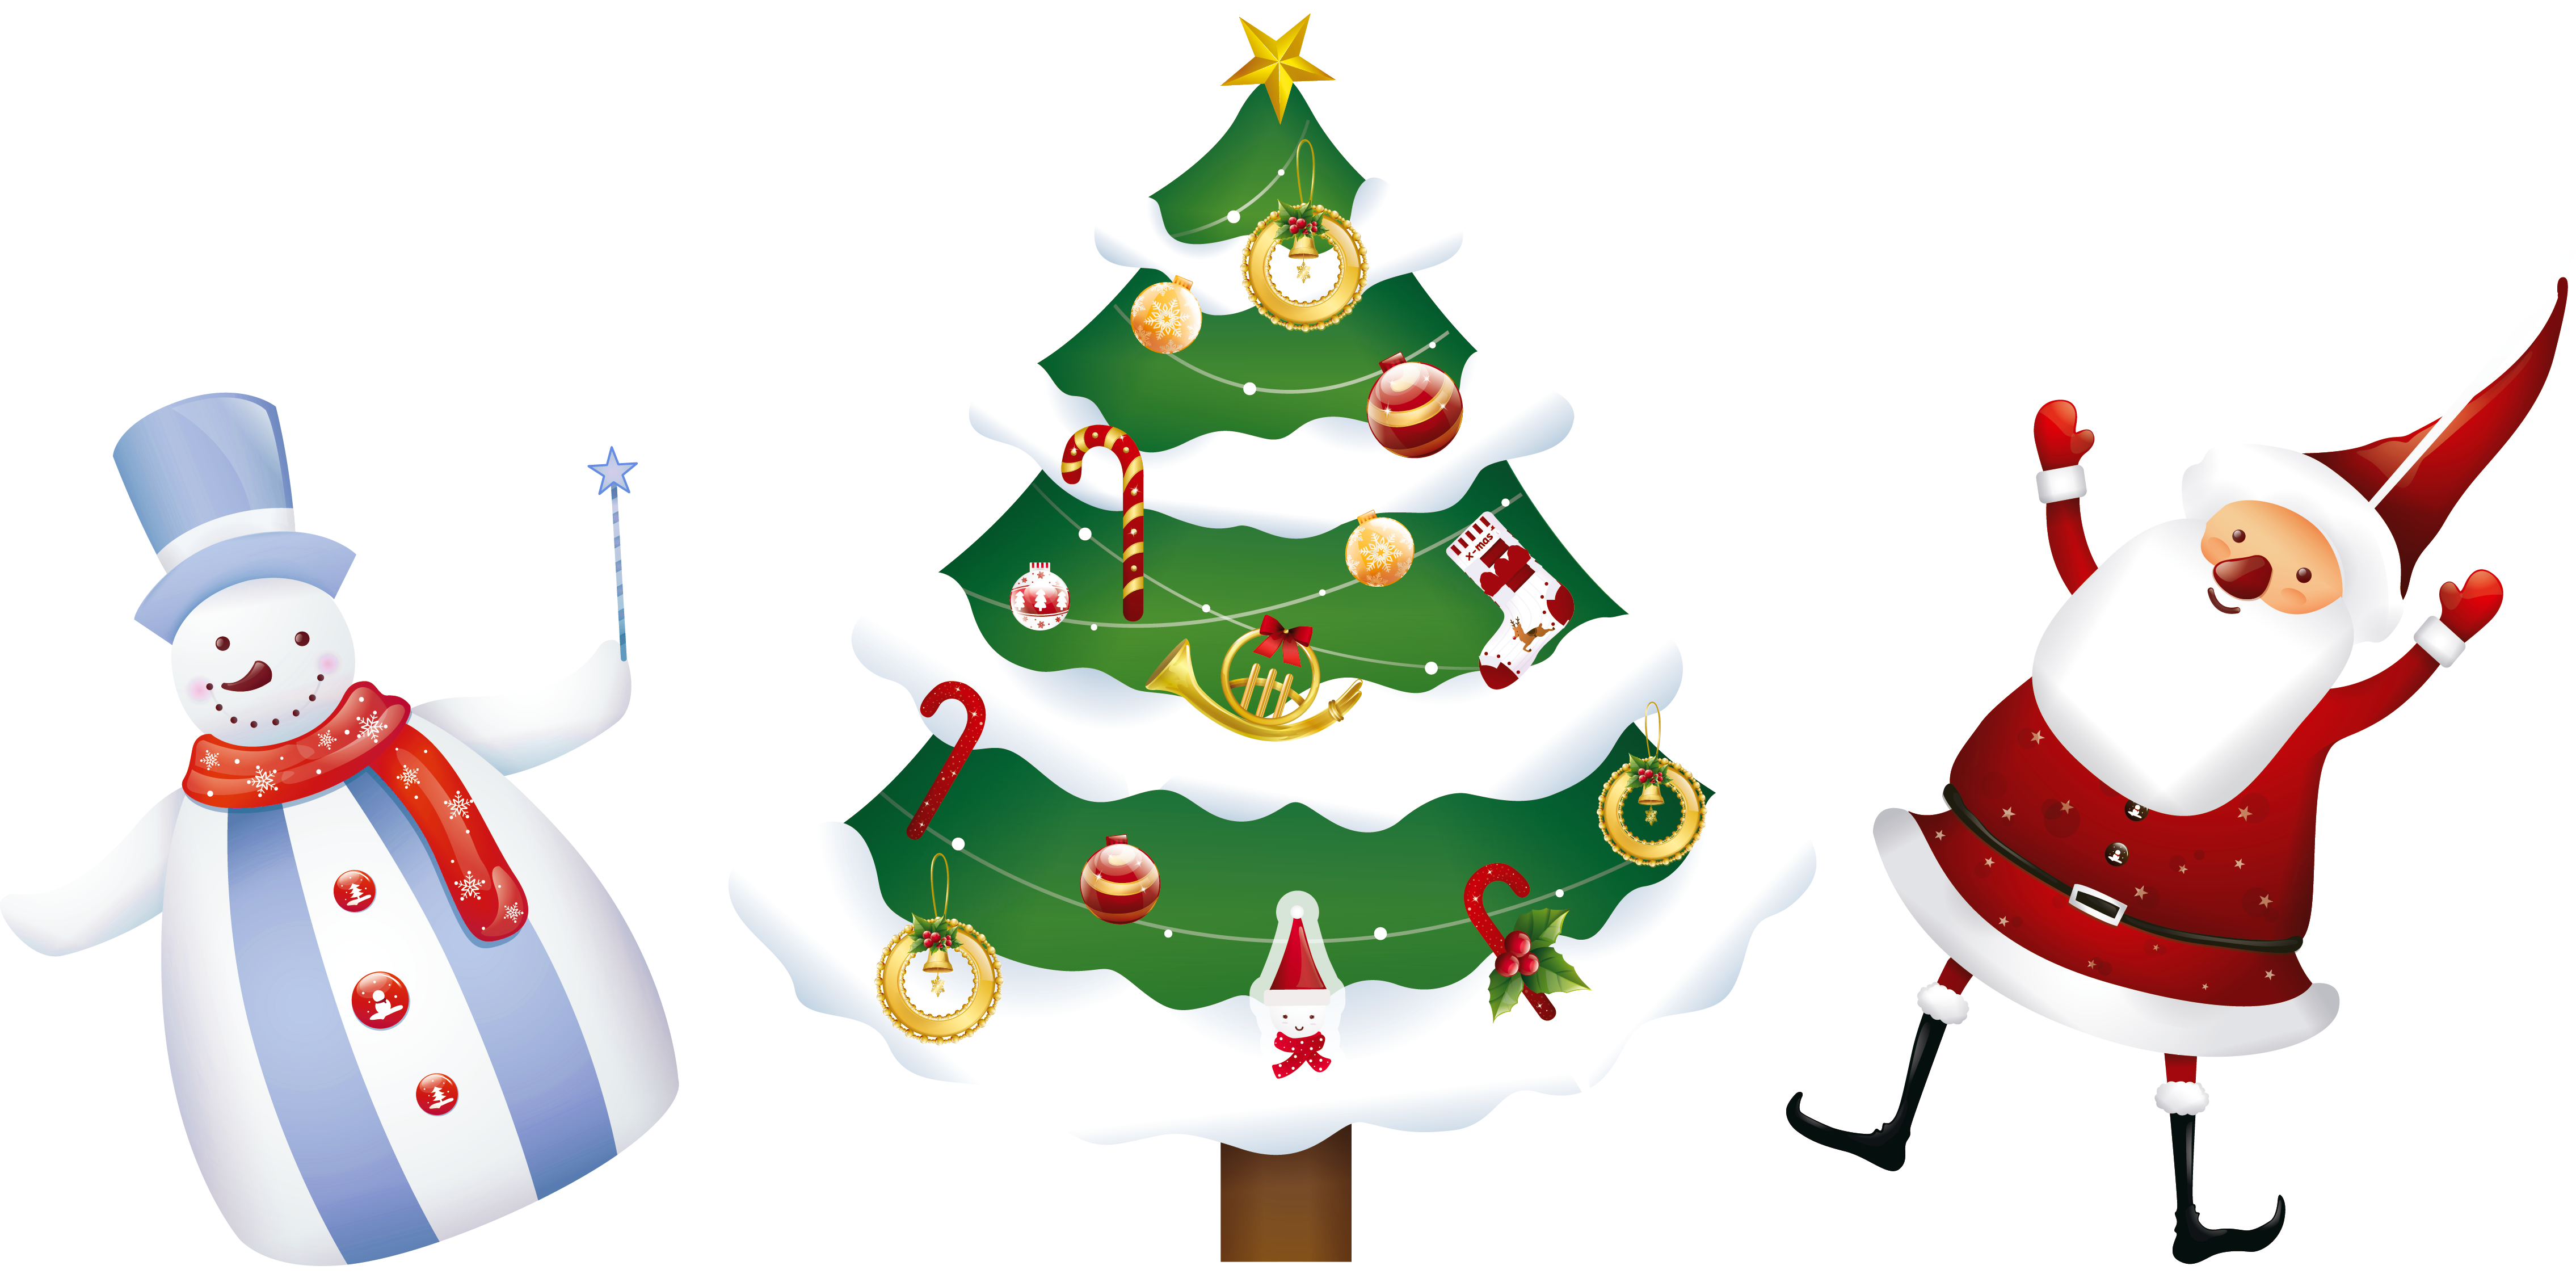 Snowman christmas tree clipart graphic transparent stock 28+ Collection of Beach Snowman Clipart | High quality, free ... graphic transparent stock